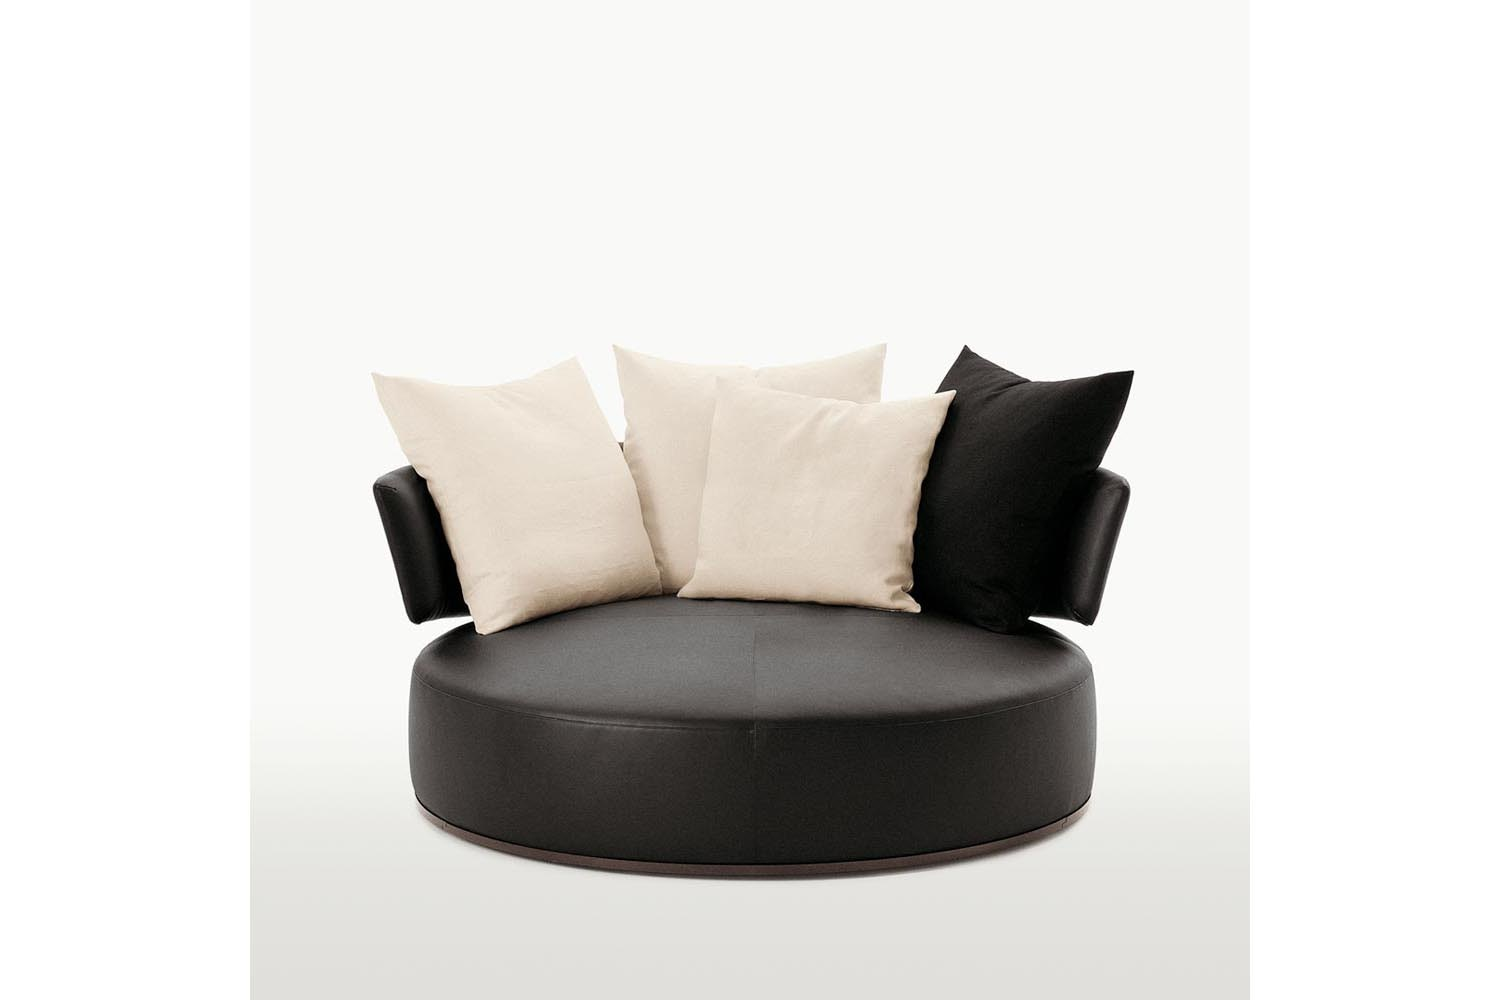 Amoenus Sofa by Antonio Citterio for Maxalto